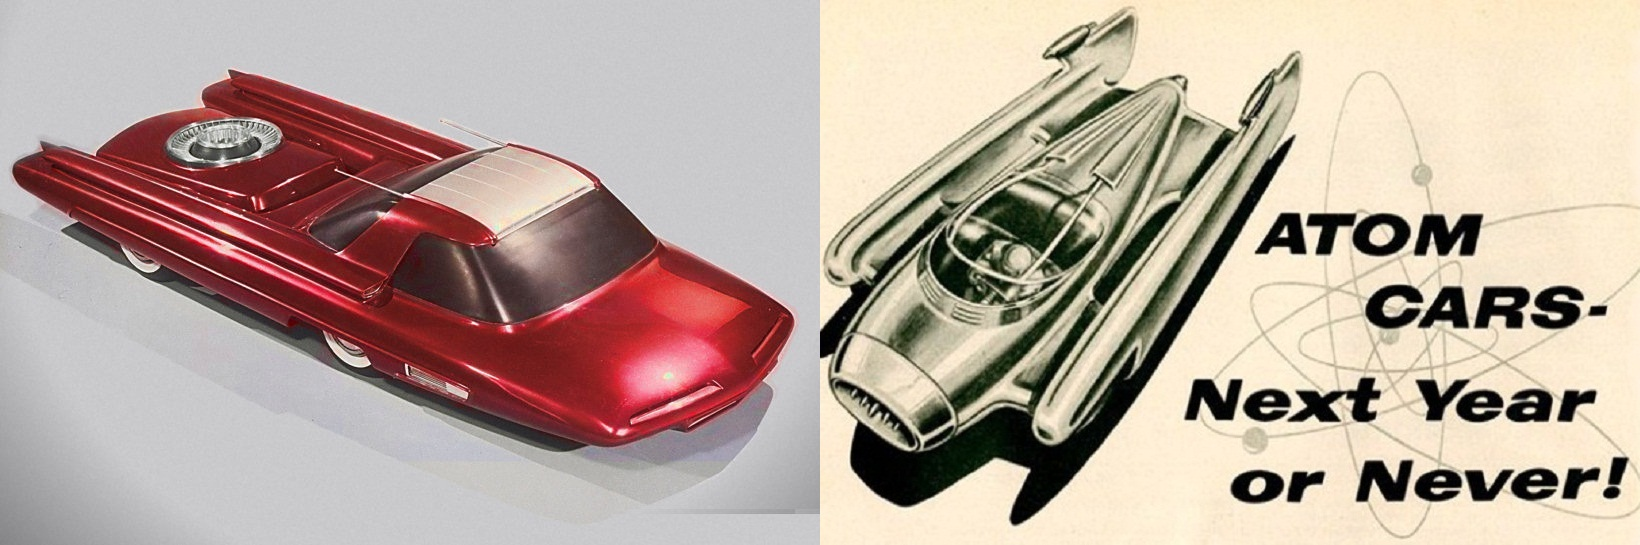 0066-01 Ford Nucleon